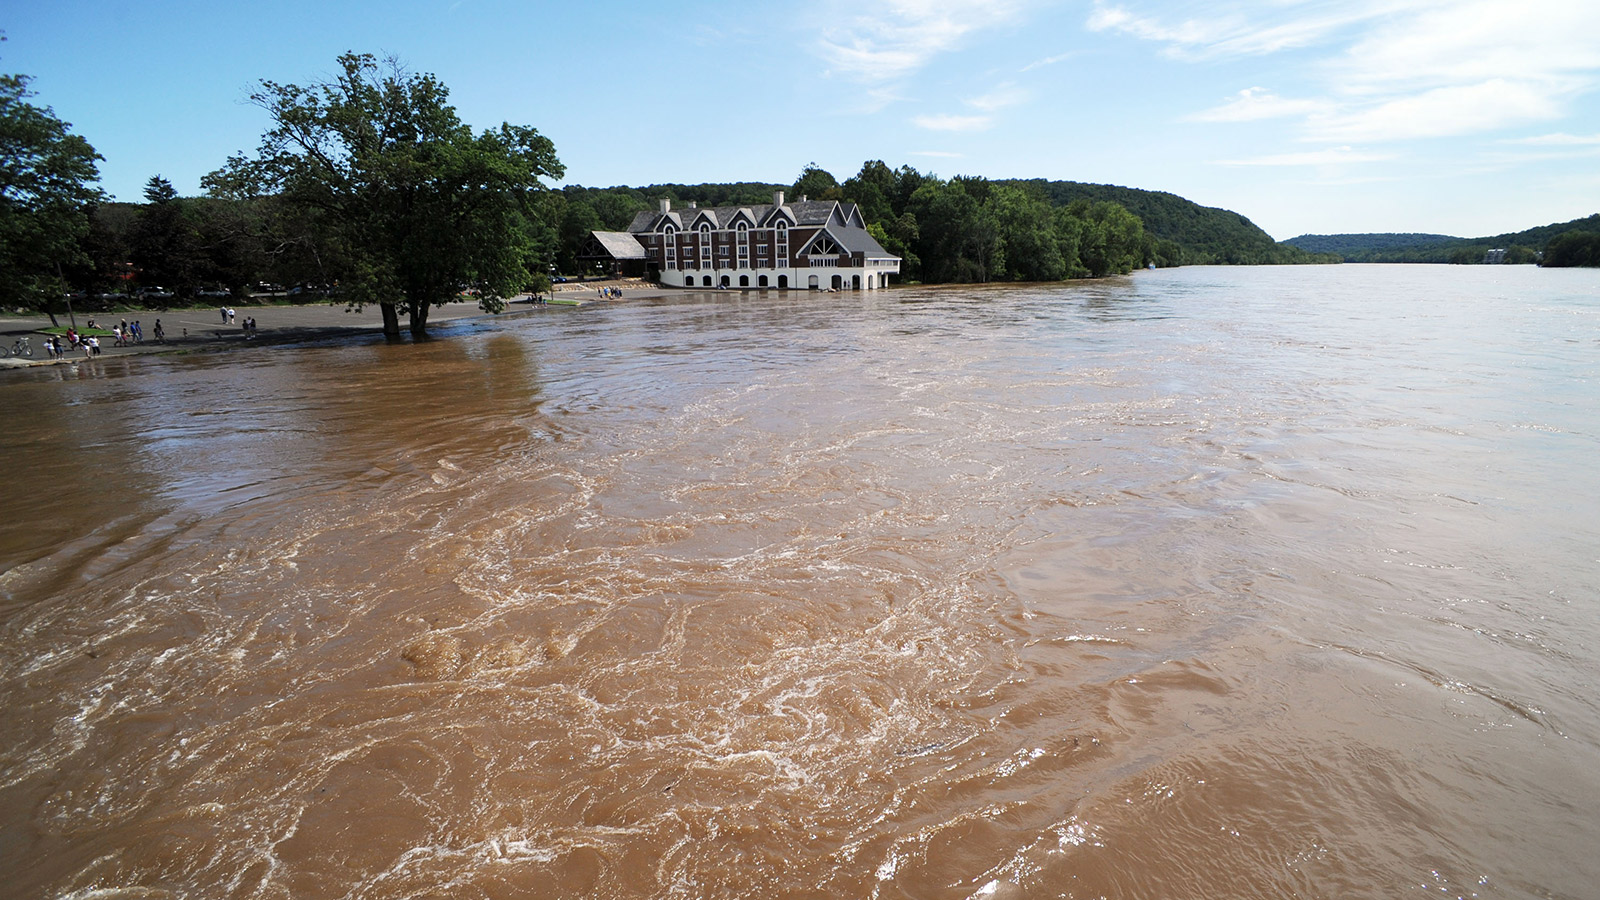 The lower level of Lambertville Inn is covered in water as the Delaware River crests August 29, 2011 in Lambertville, New Jersey.